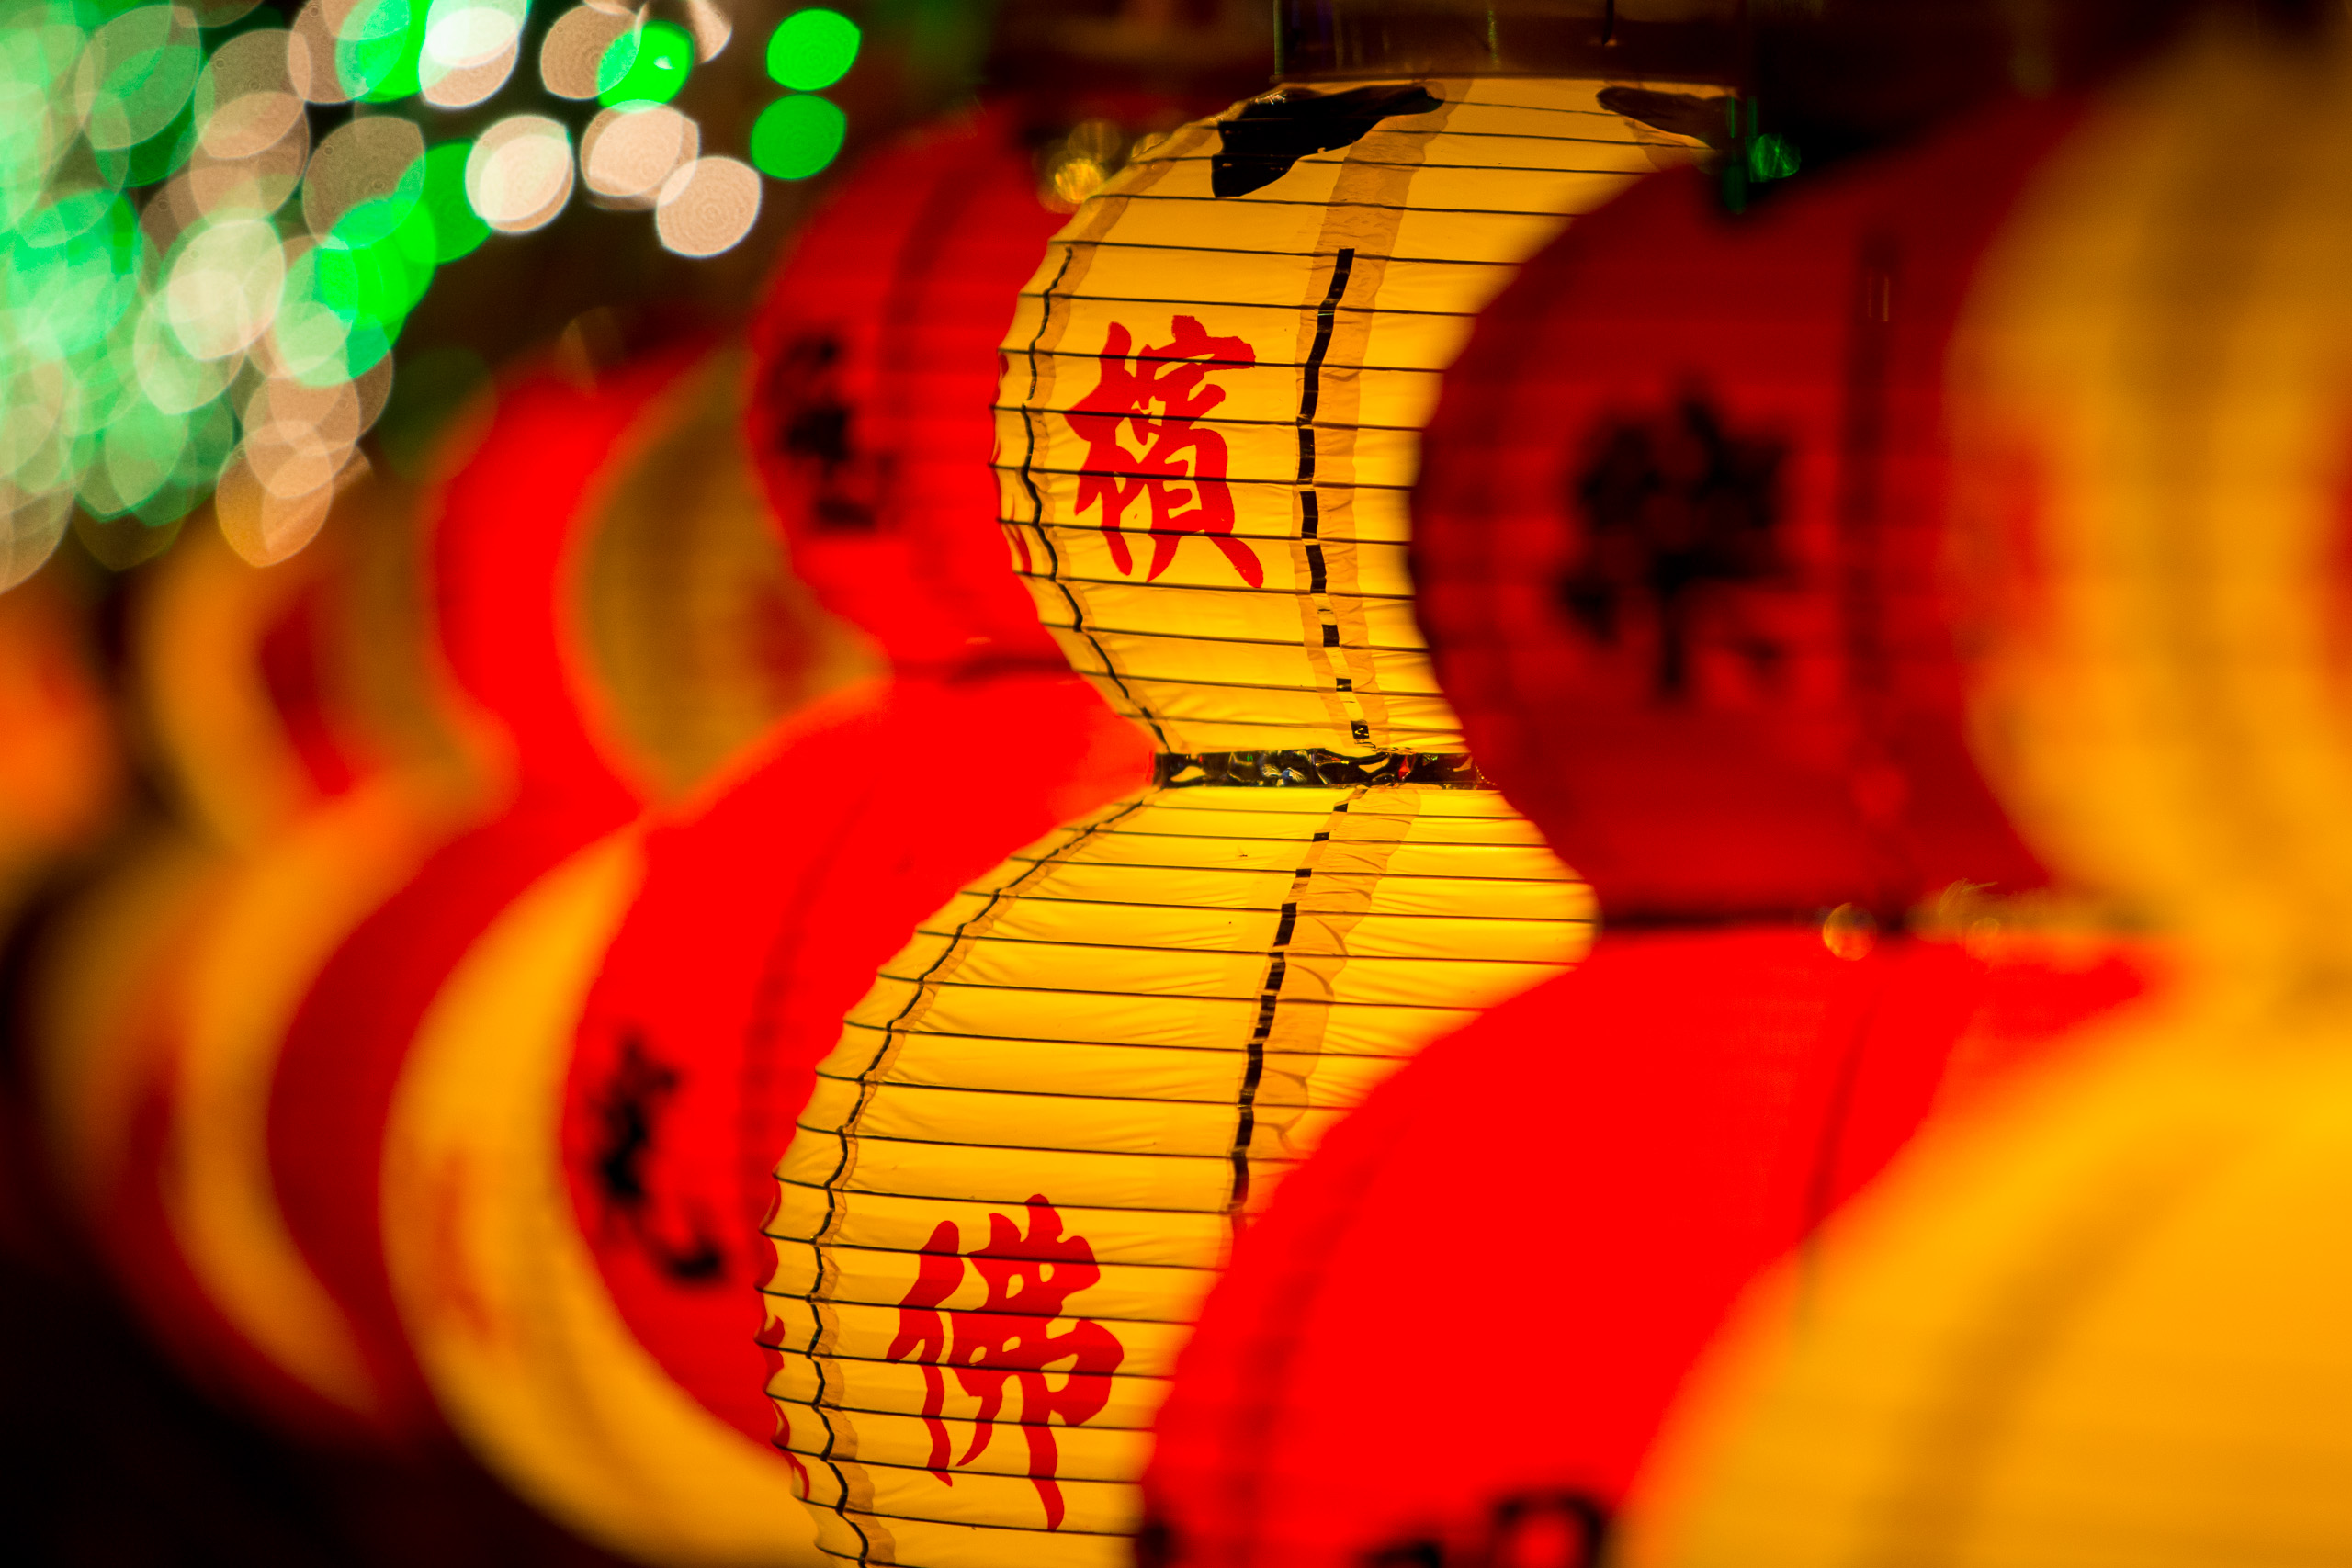 Chinese New Year Images and Decoration with Lantern Lamp ...